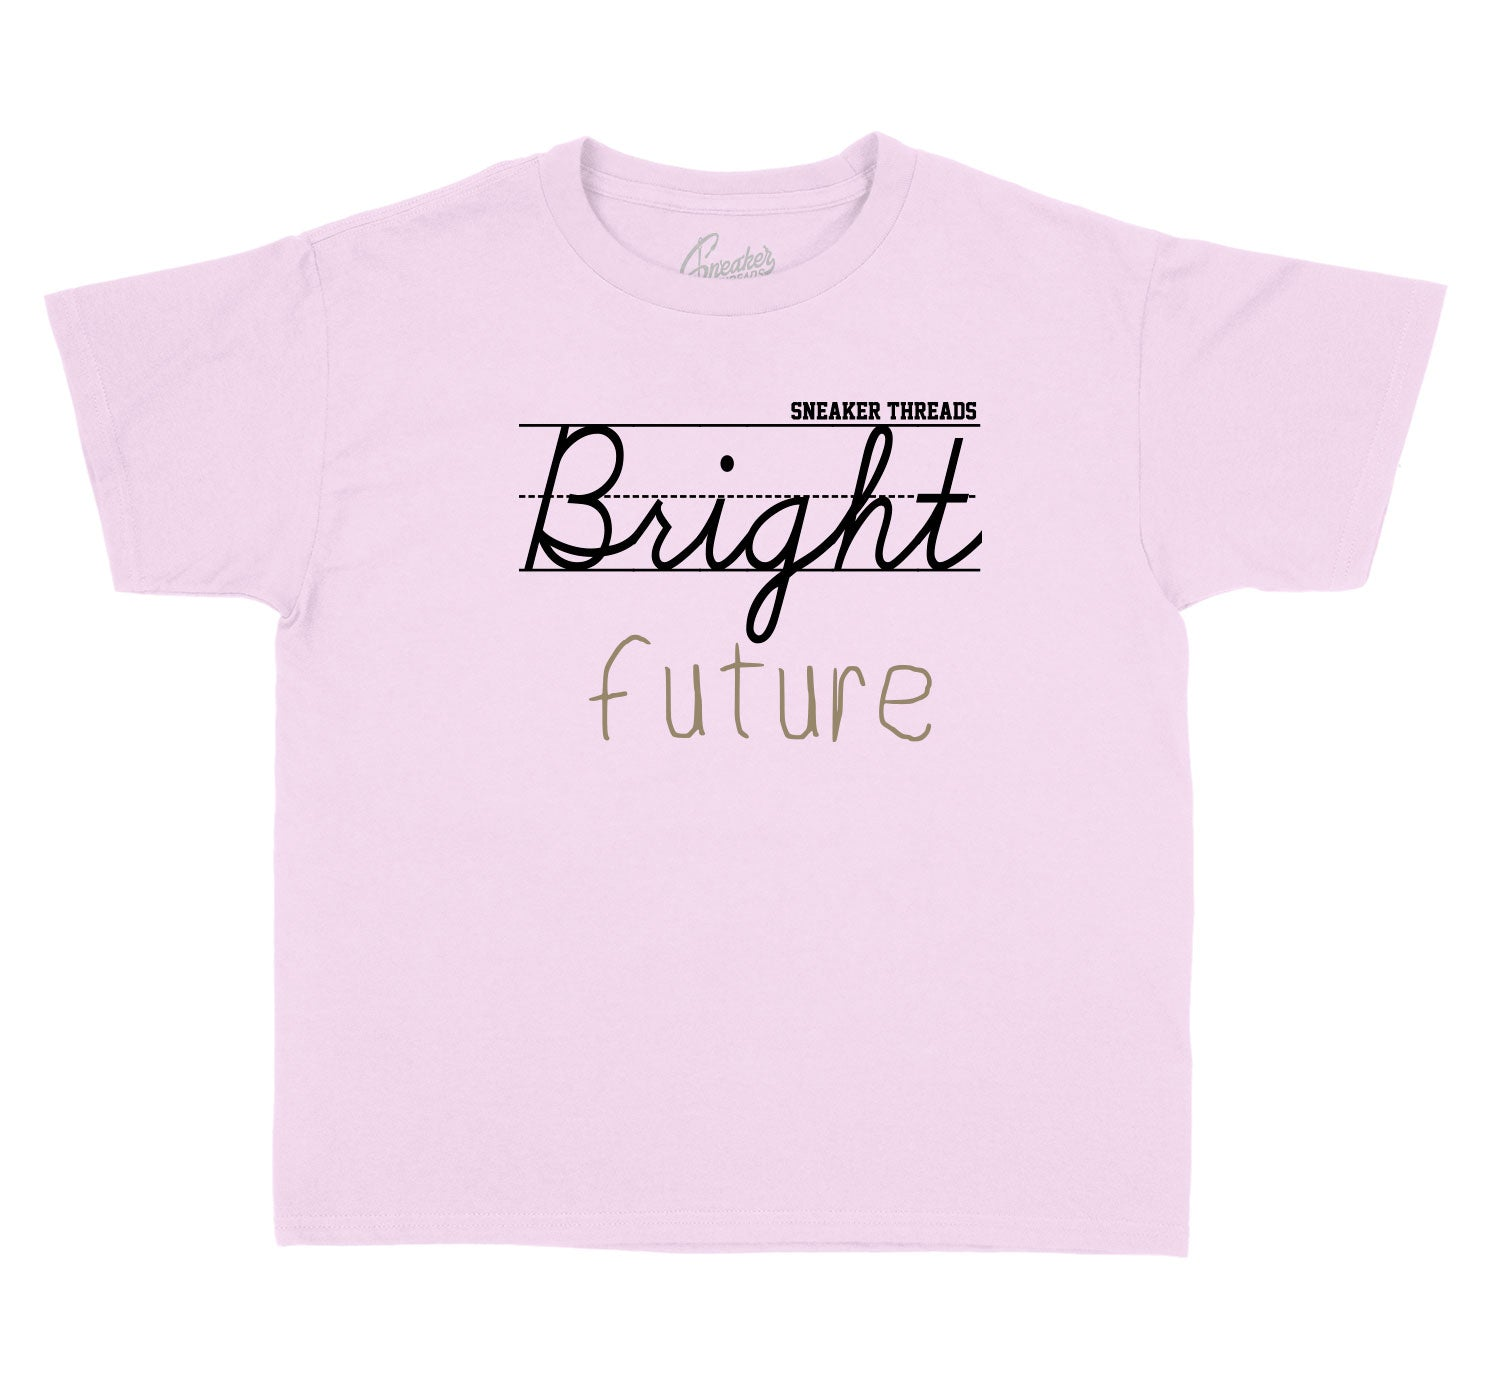 Kids - Soft Vision Yeezy Bright Future Shirt